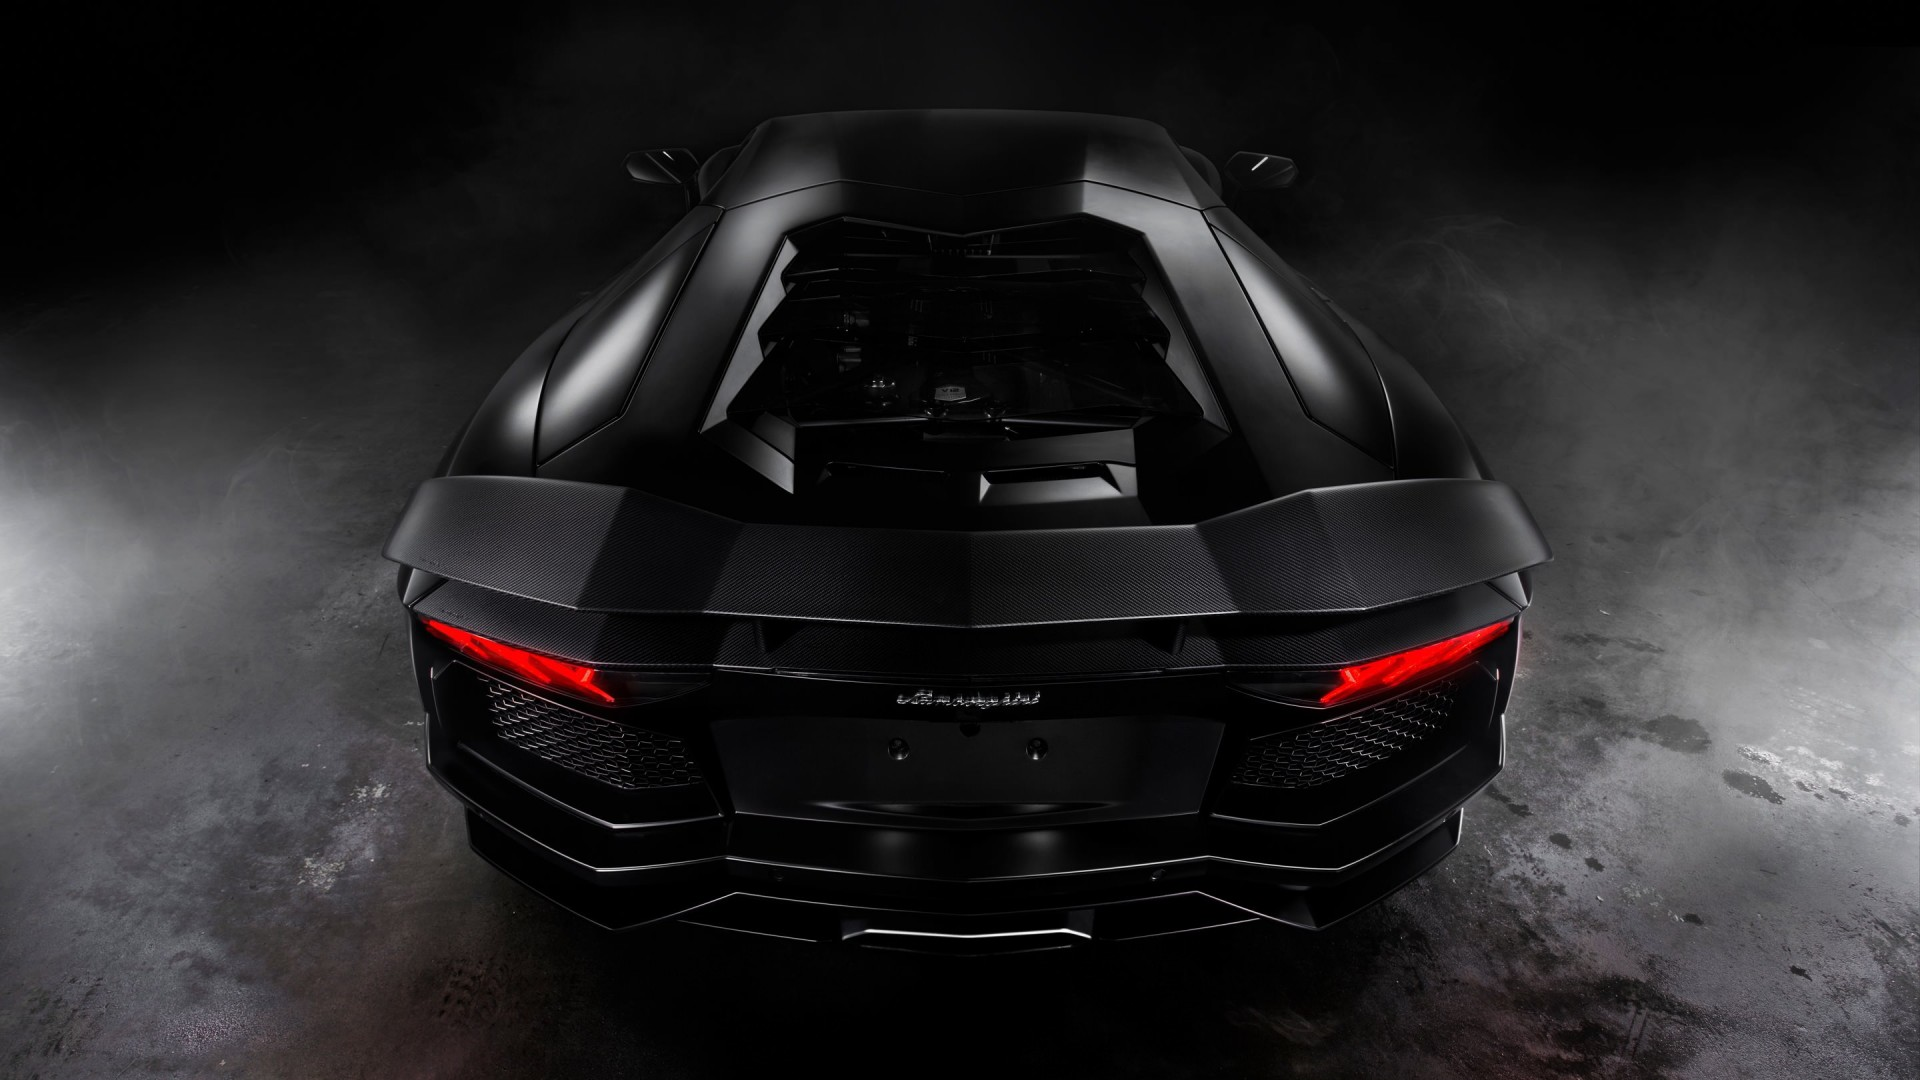 Lamborghini Aventador Matte Black Wallpaper for Desktop 1920x1080